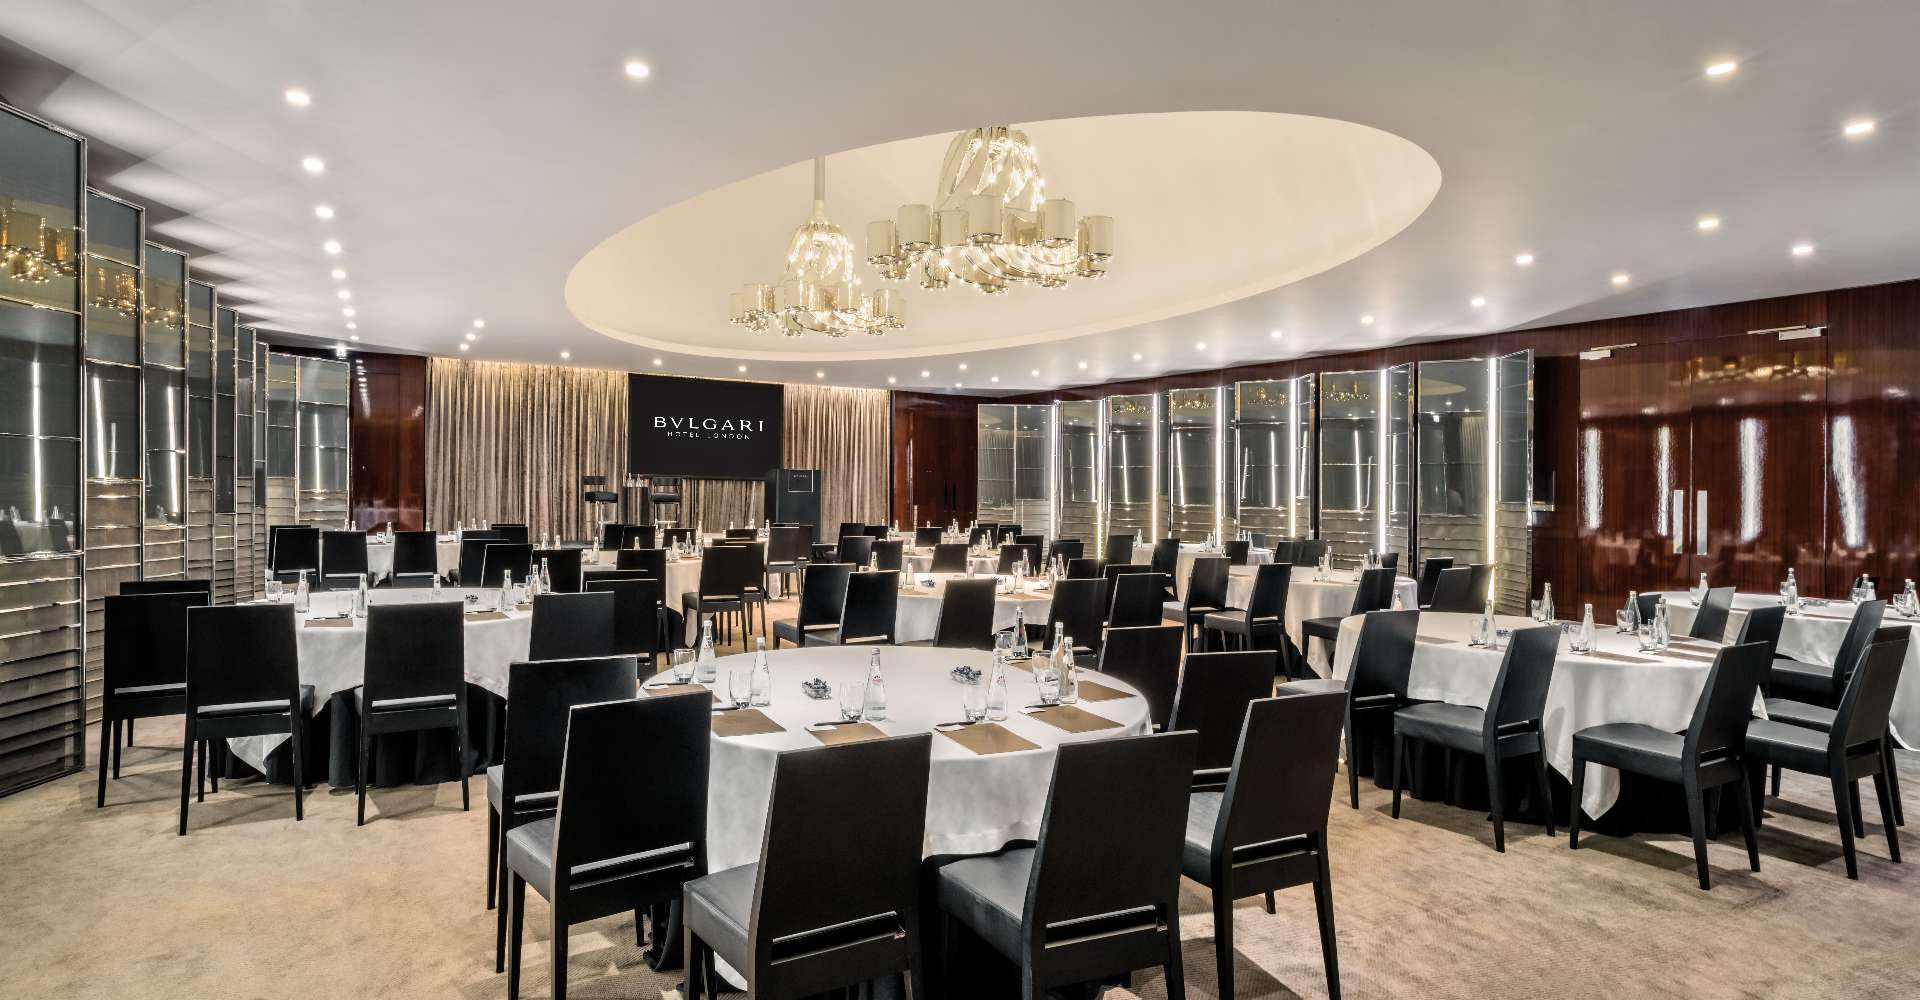 Bulgari Hotel Event Space Hire